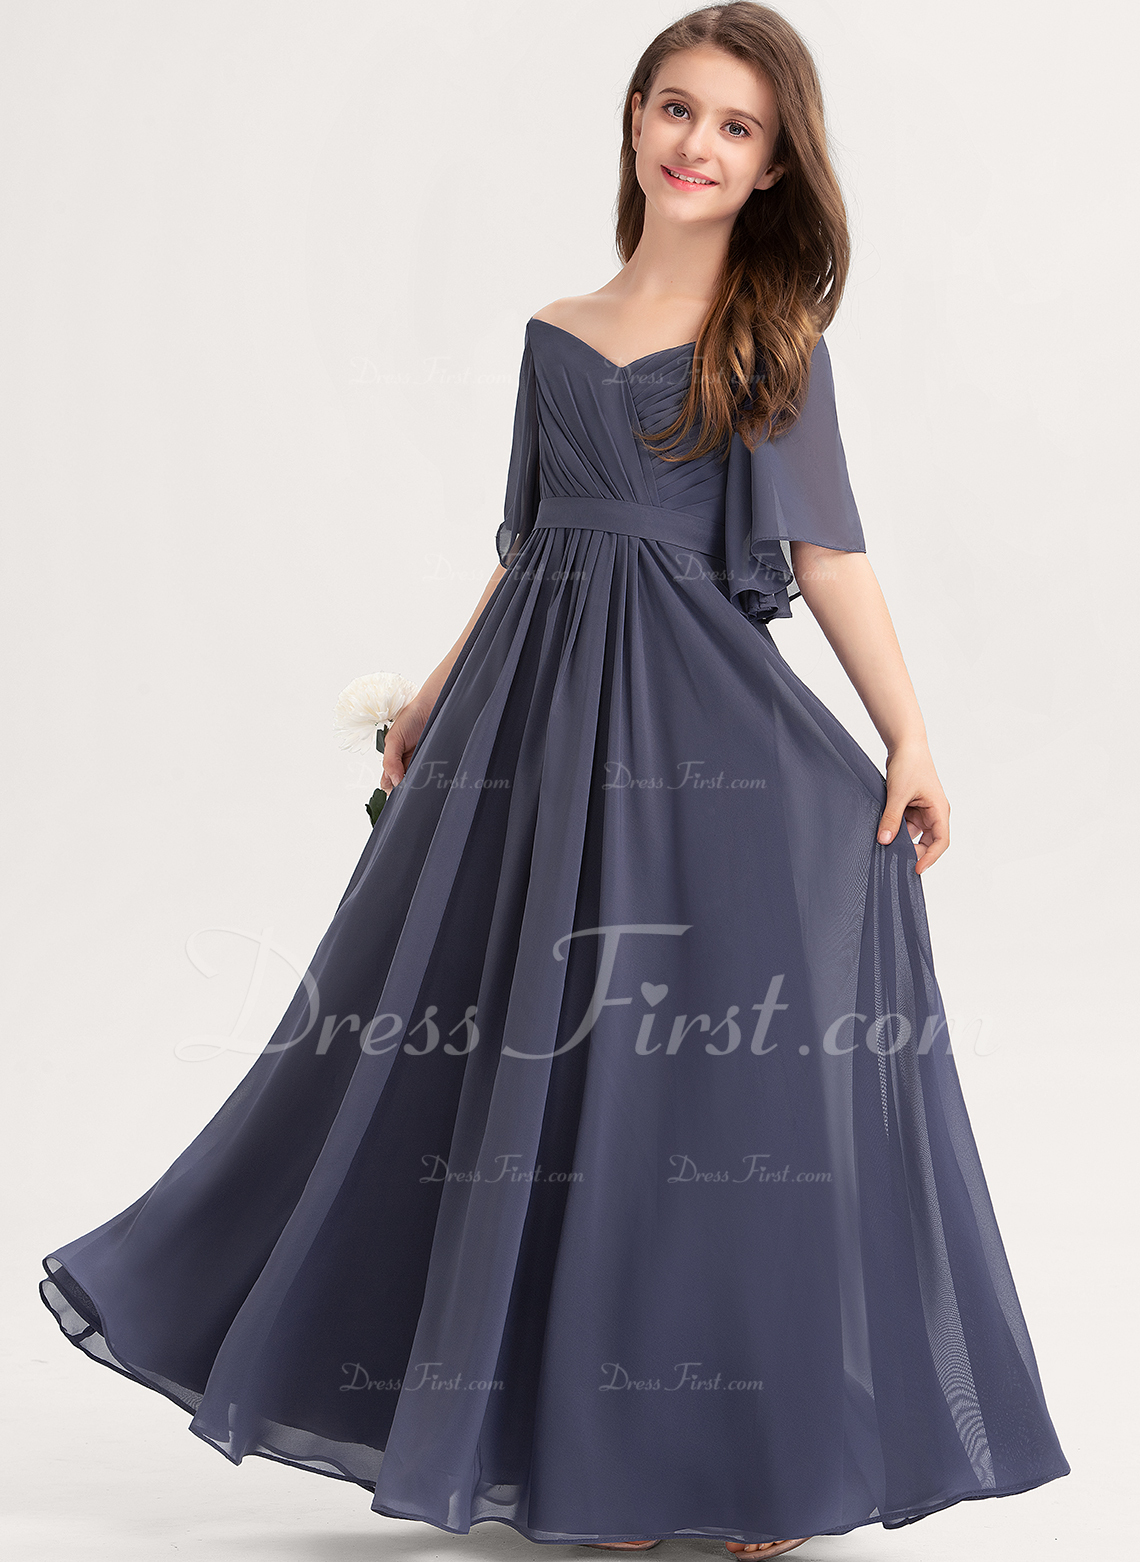 A-Line Off-the-Shoulder Floor-Length Chiffon Junior Bridesmaid Dress With Ruffle Bow(s)